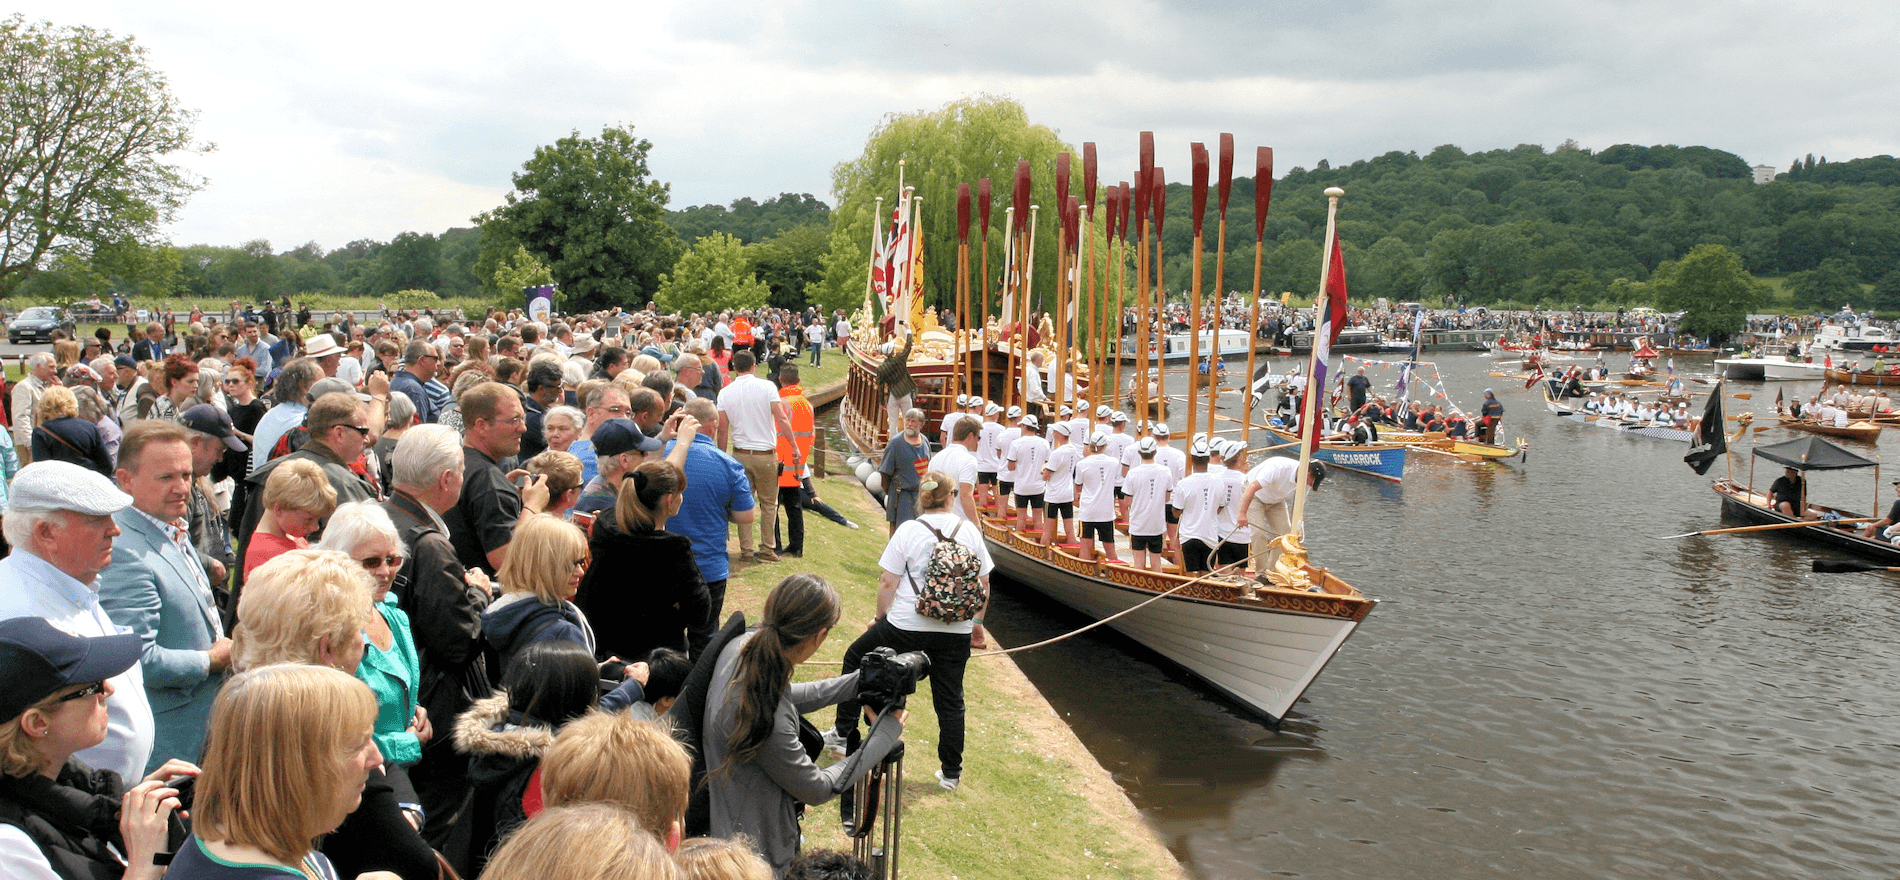 Gloriana, The Official Website for the Queen's Rowbarge